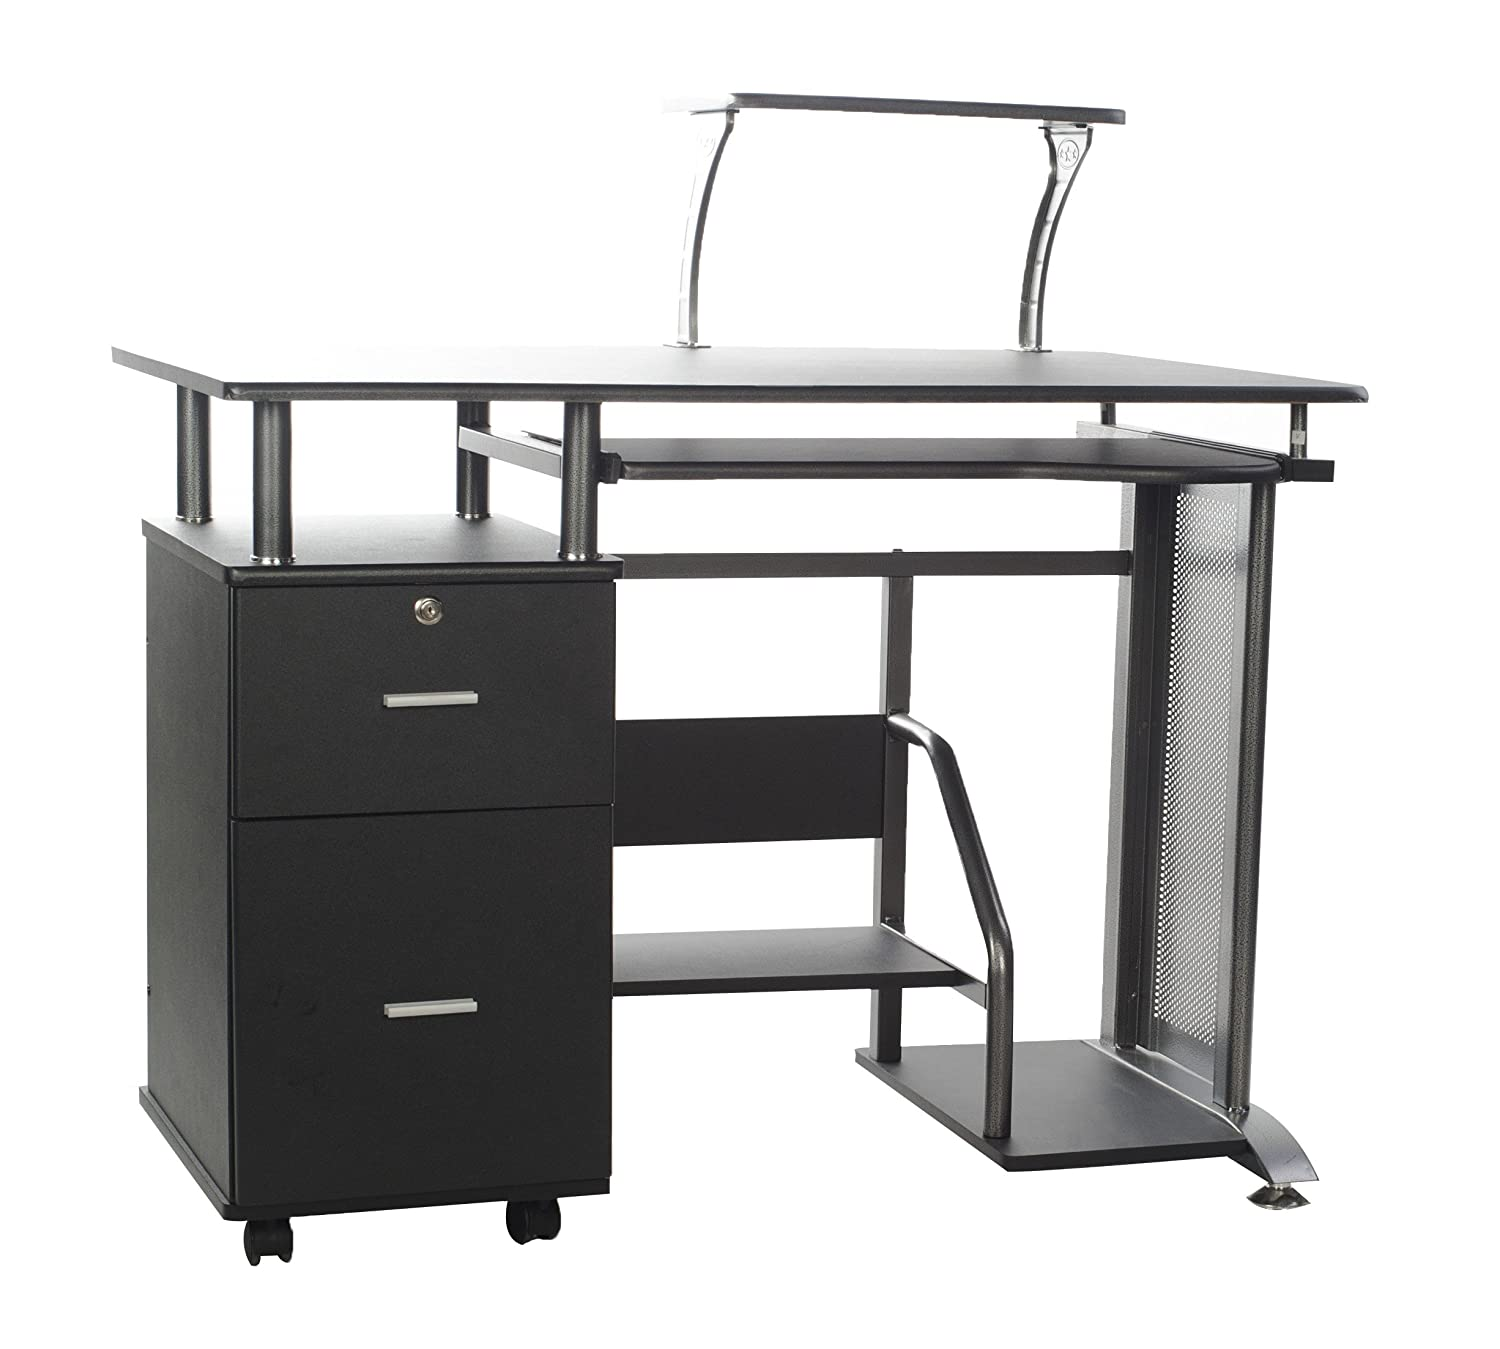 Amazon com onespace rothmin computer desk with storage cabinet kitchen dining